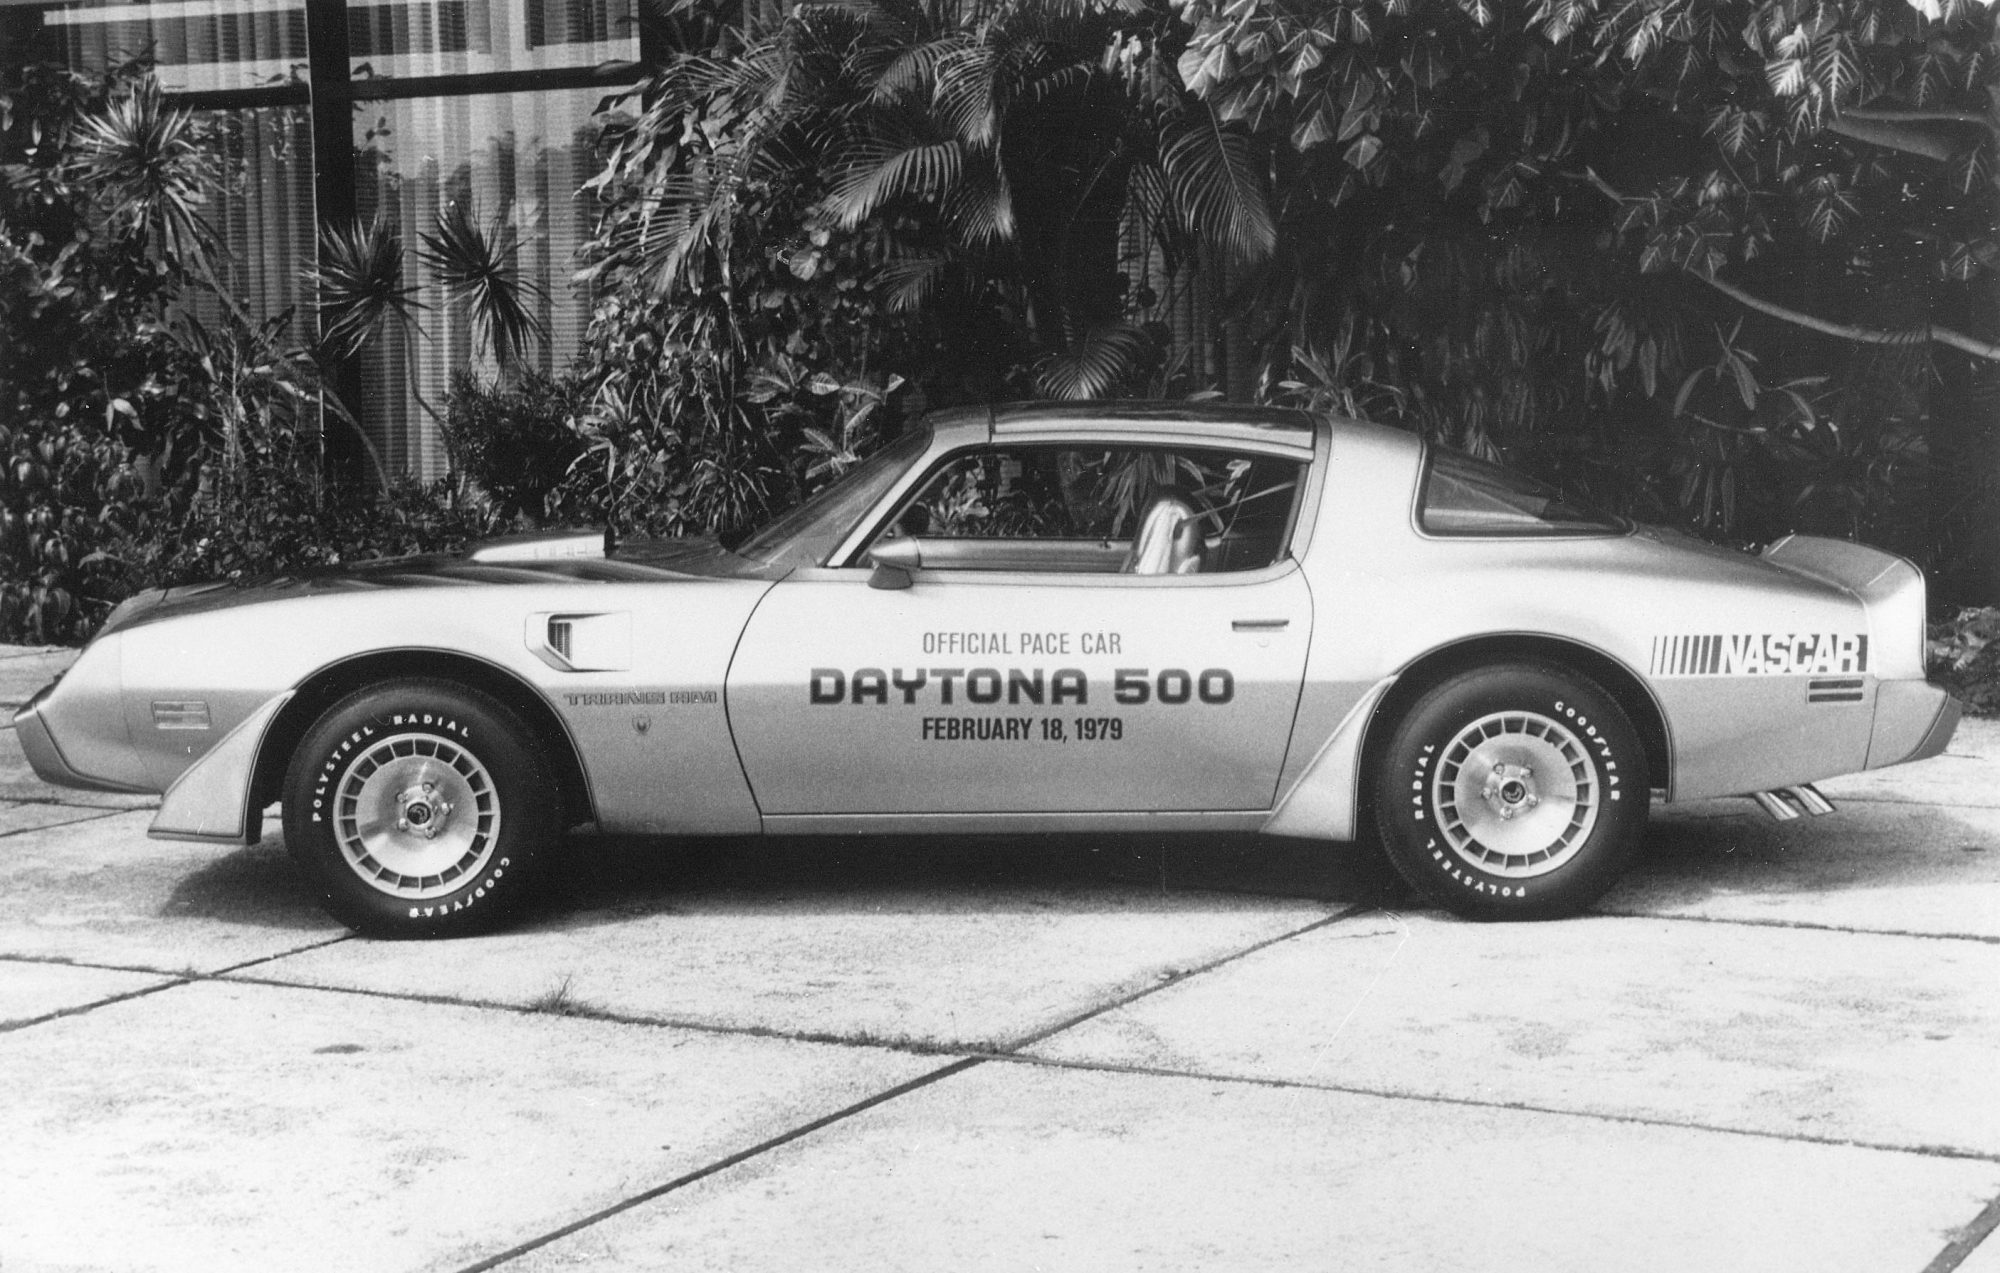 Daytona 500 Pace Car